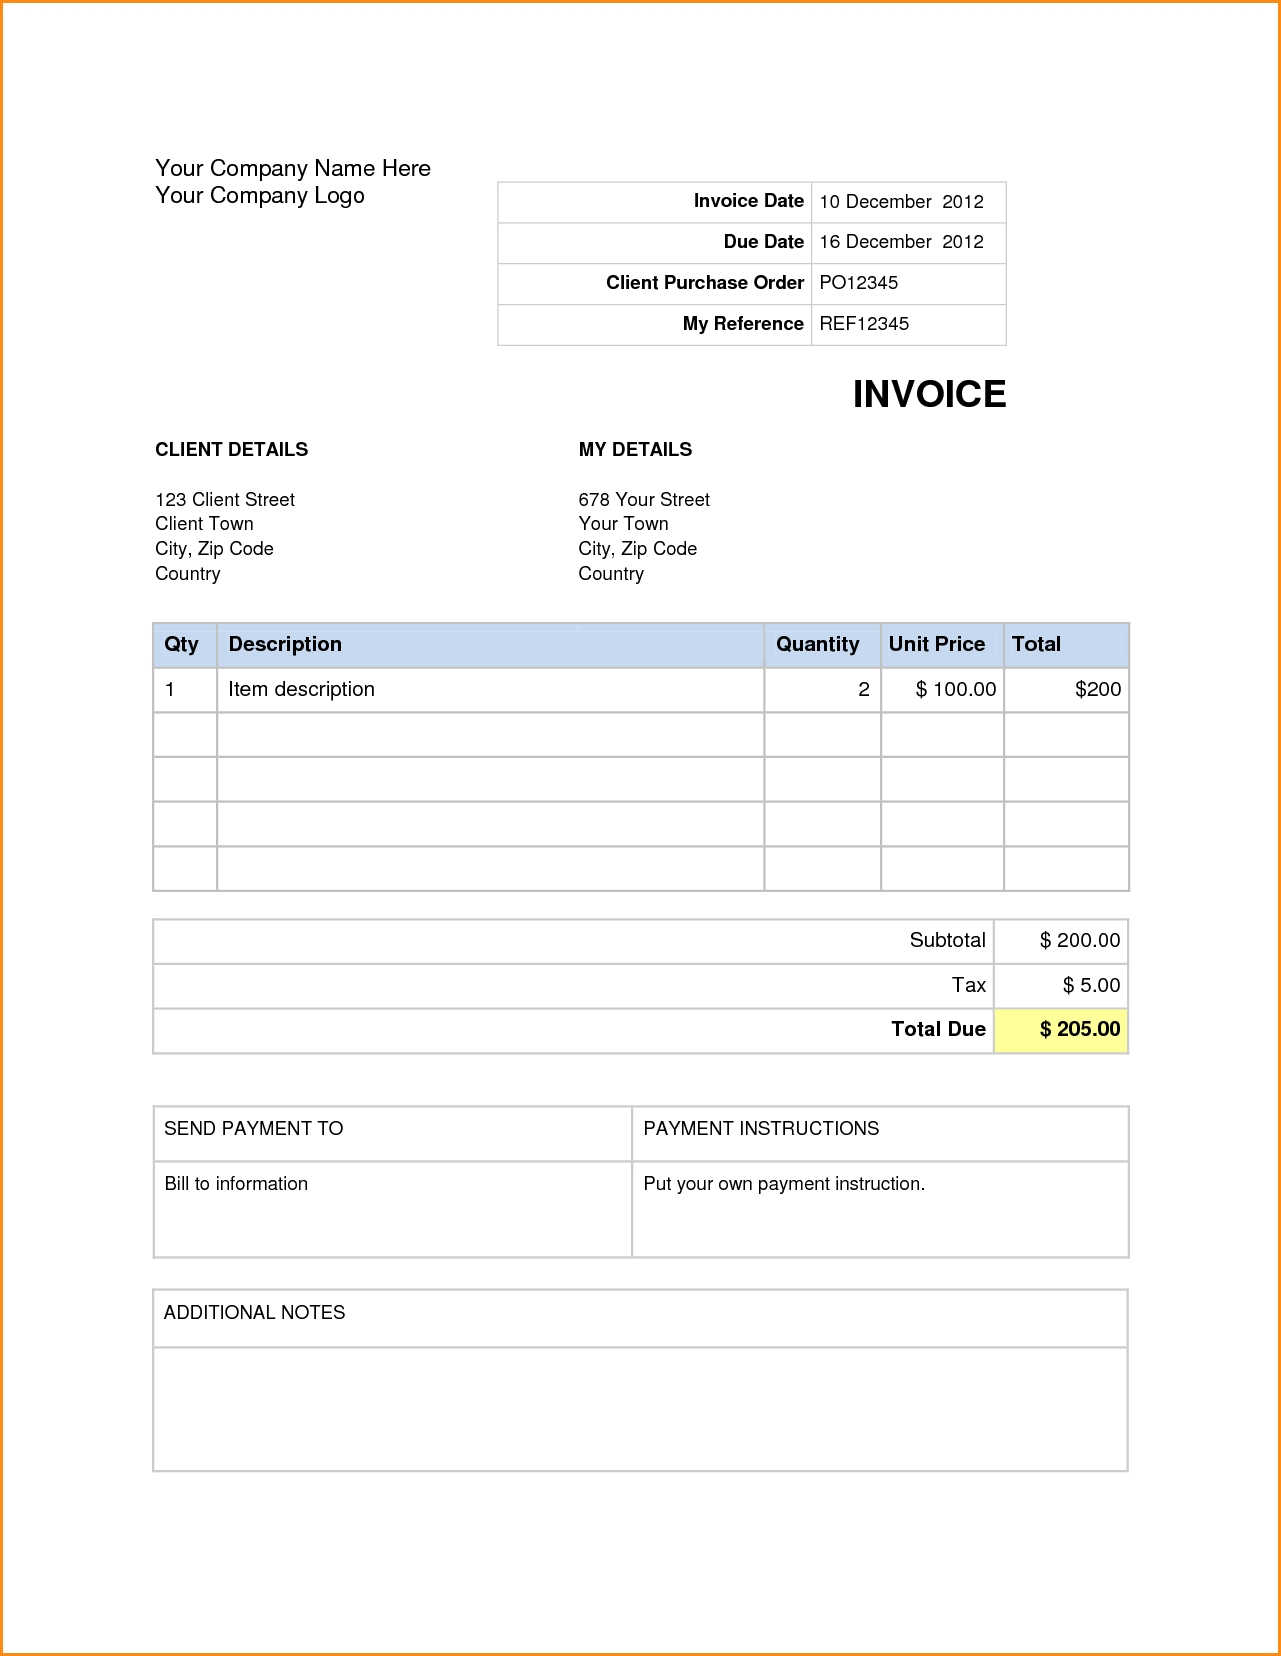 invoice download free inventory management blank invoice invoice form word